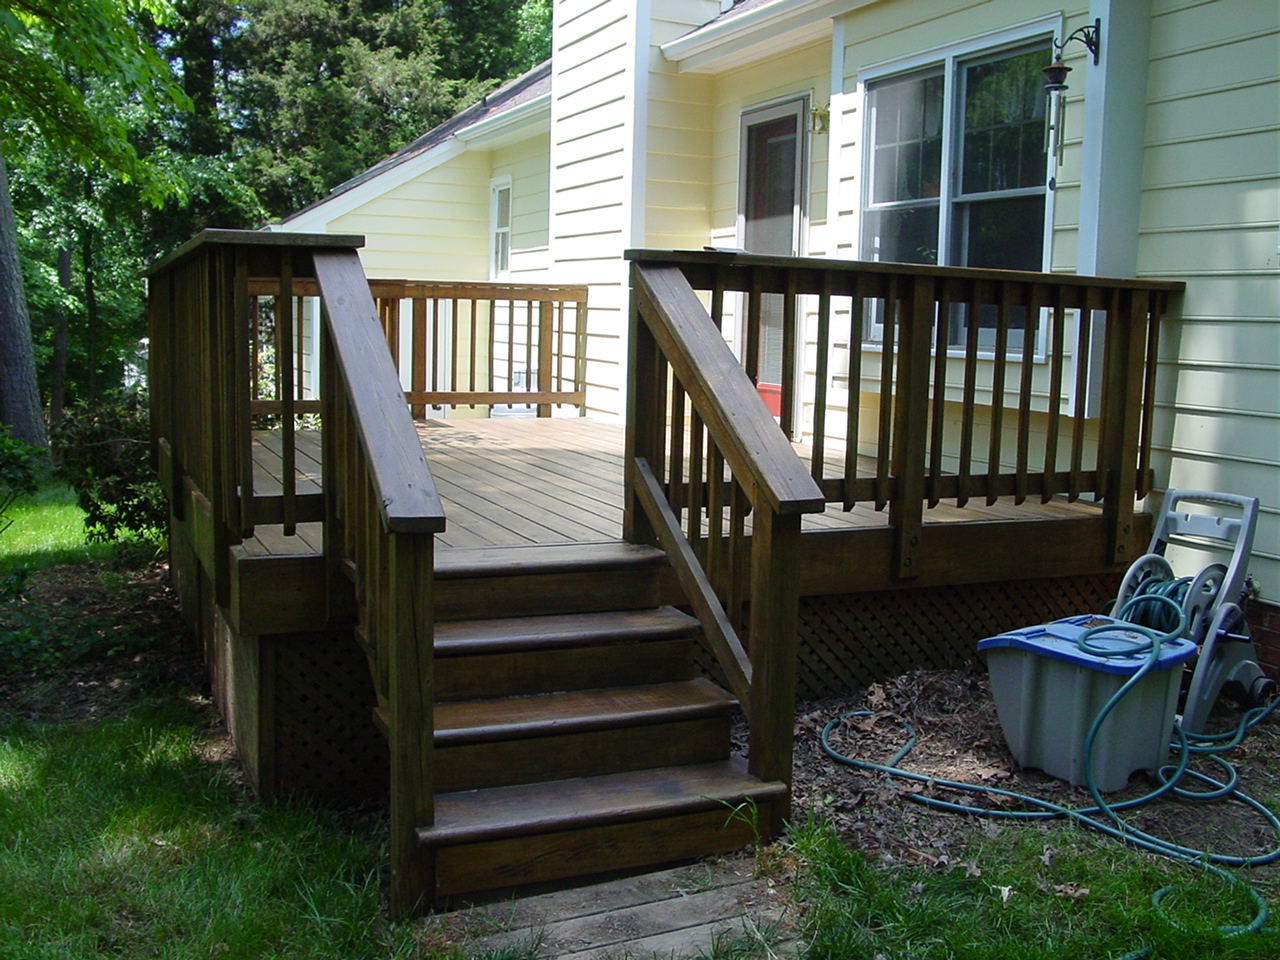 Behr Deck Over | Behr Deckover Complaints | Behr Deck Over Colors